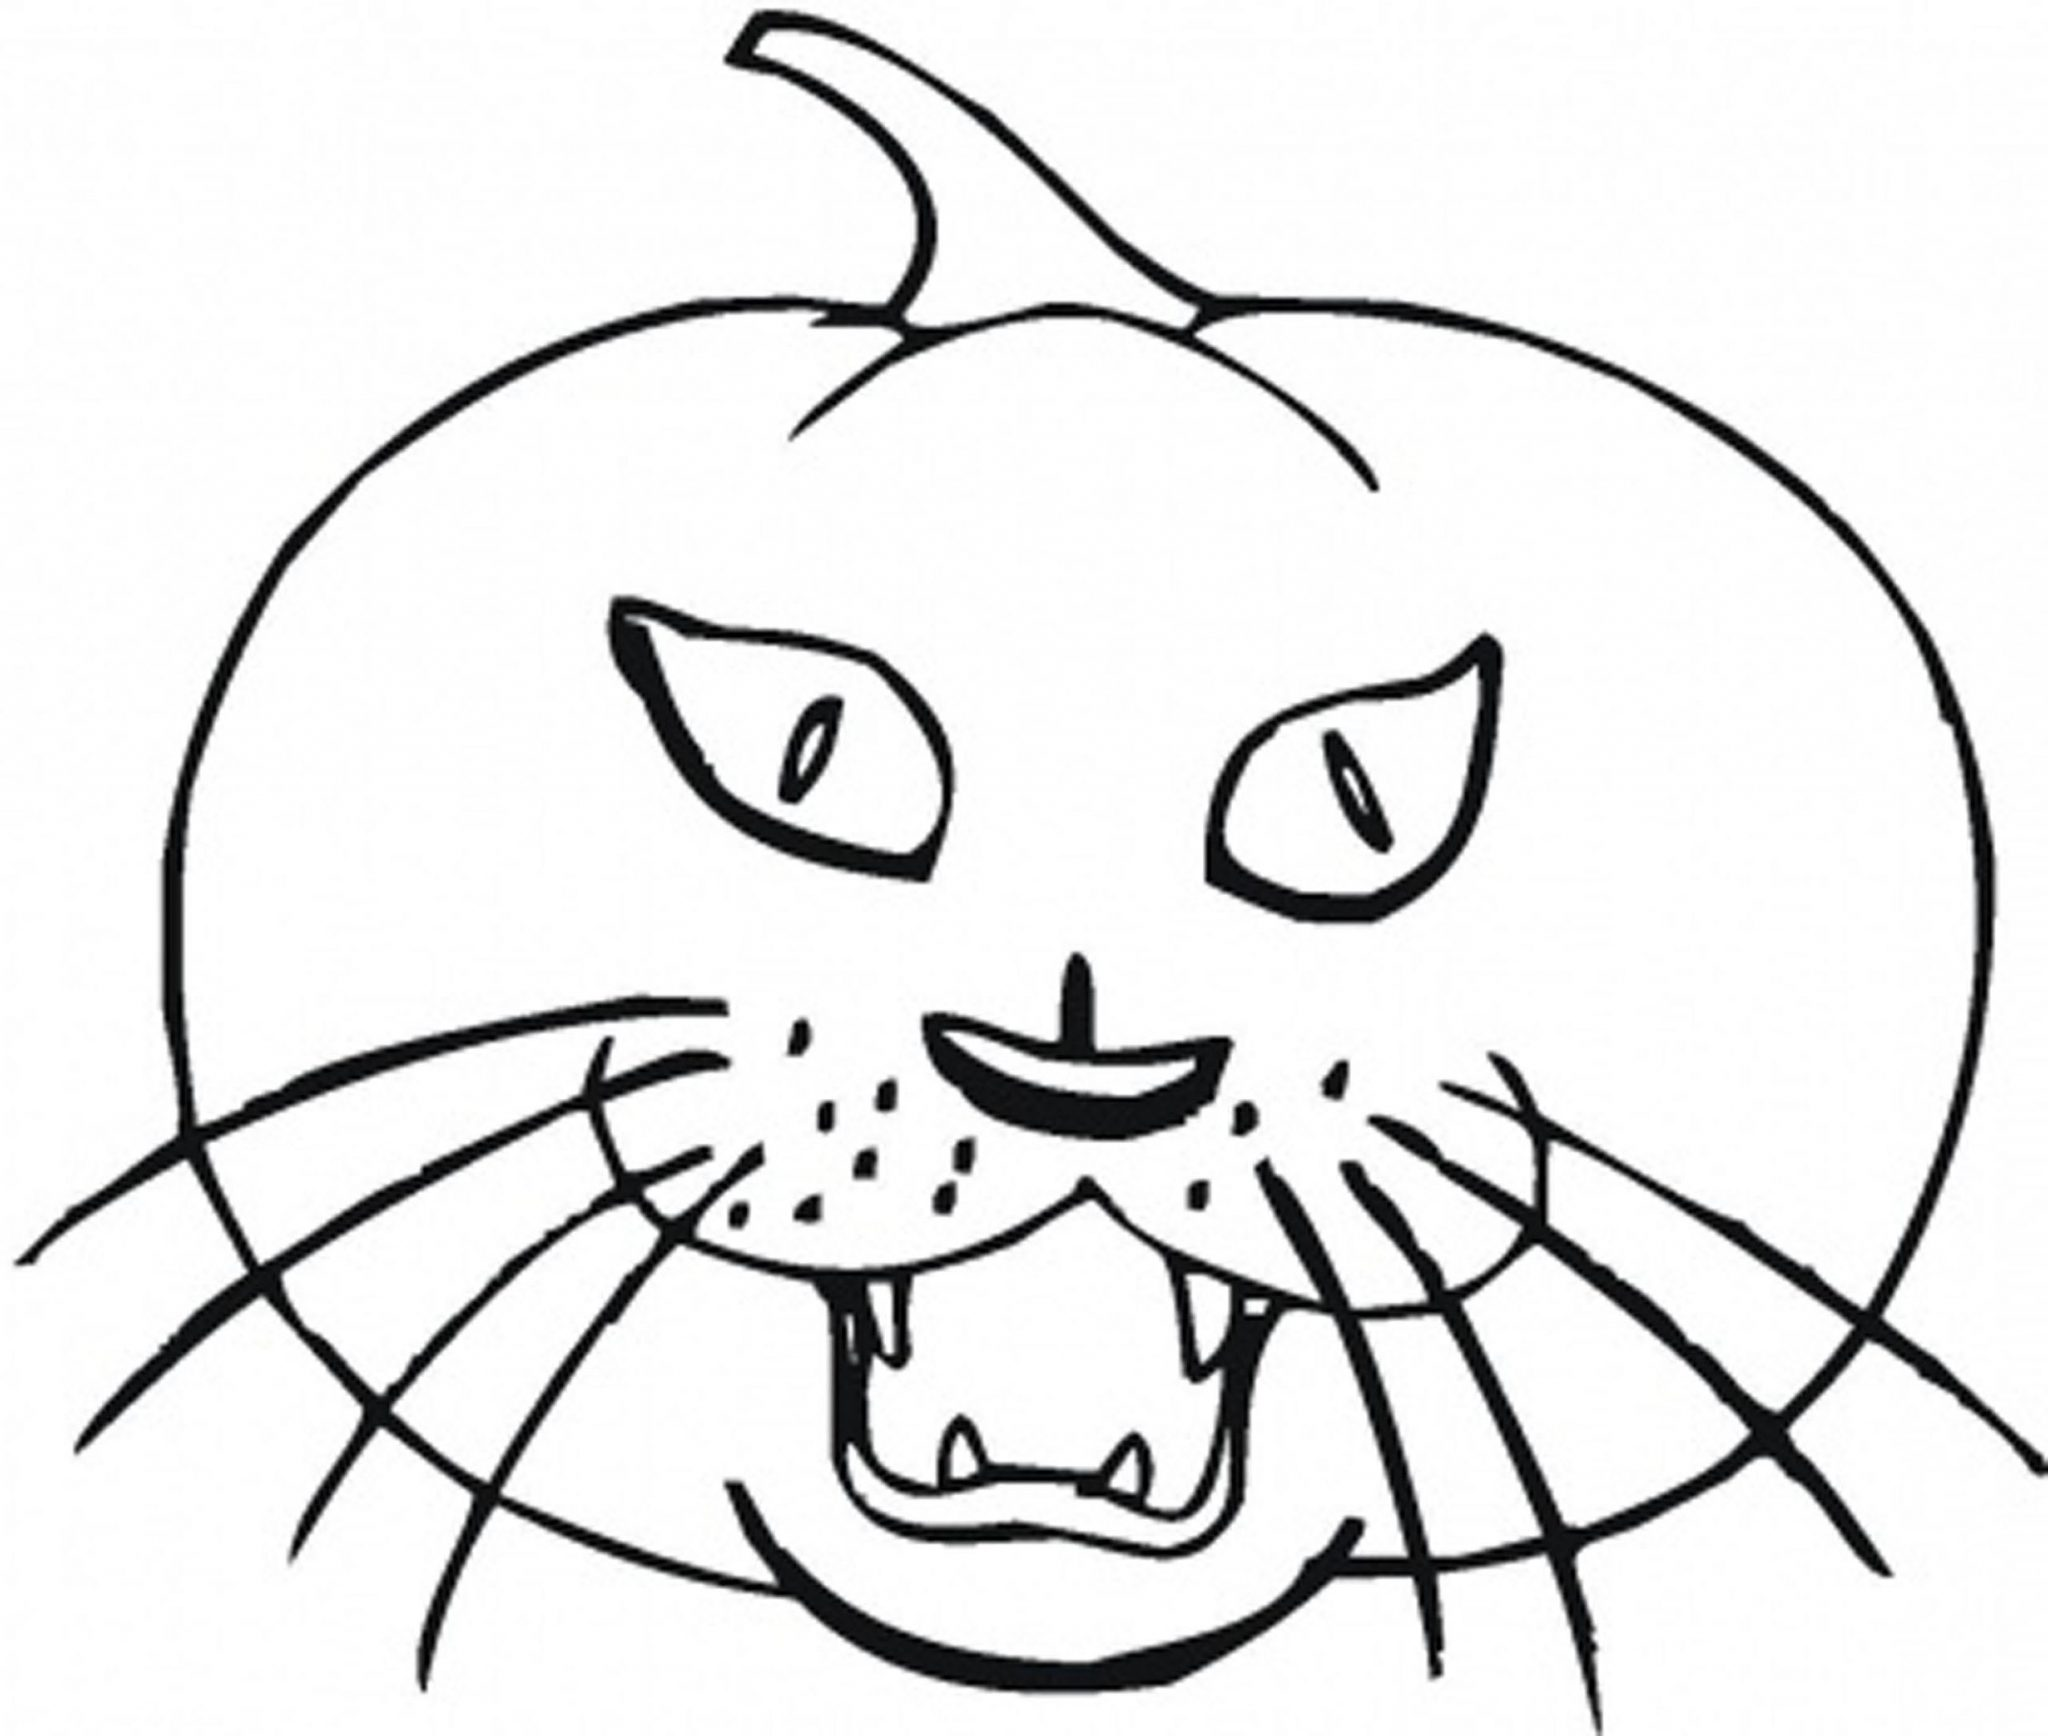 Print & Download - Pumpkin Coloring Pages and Benefits of ...